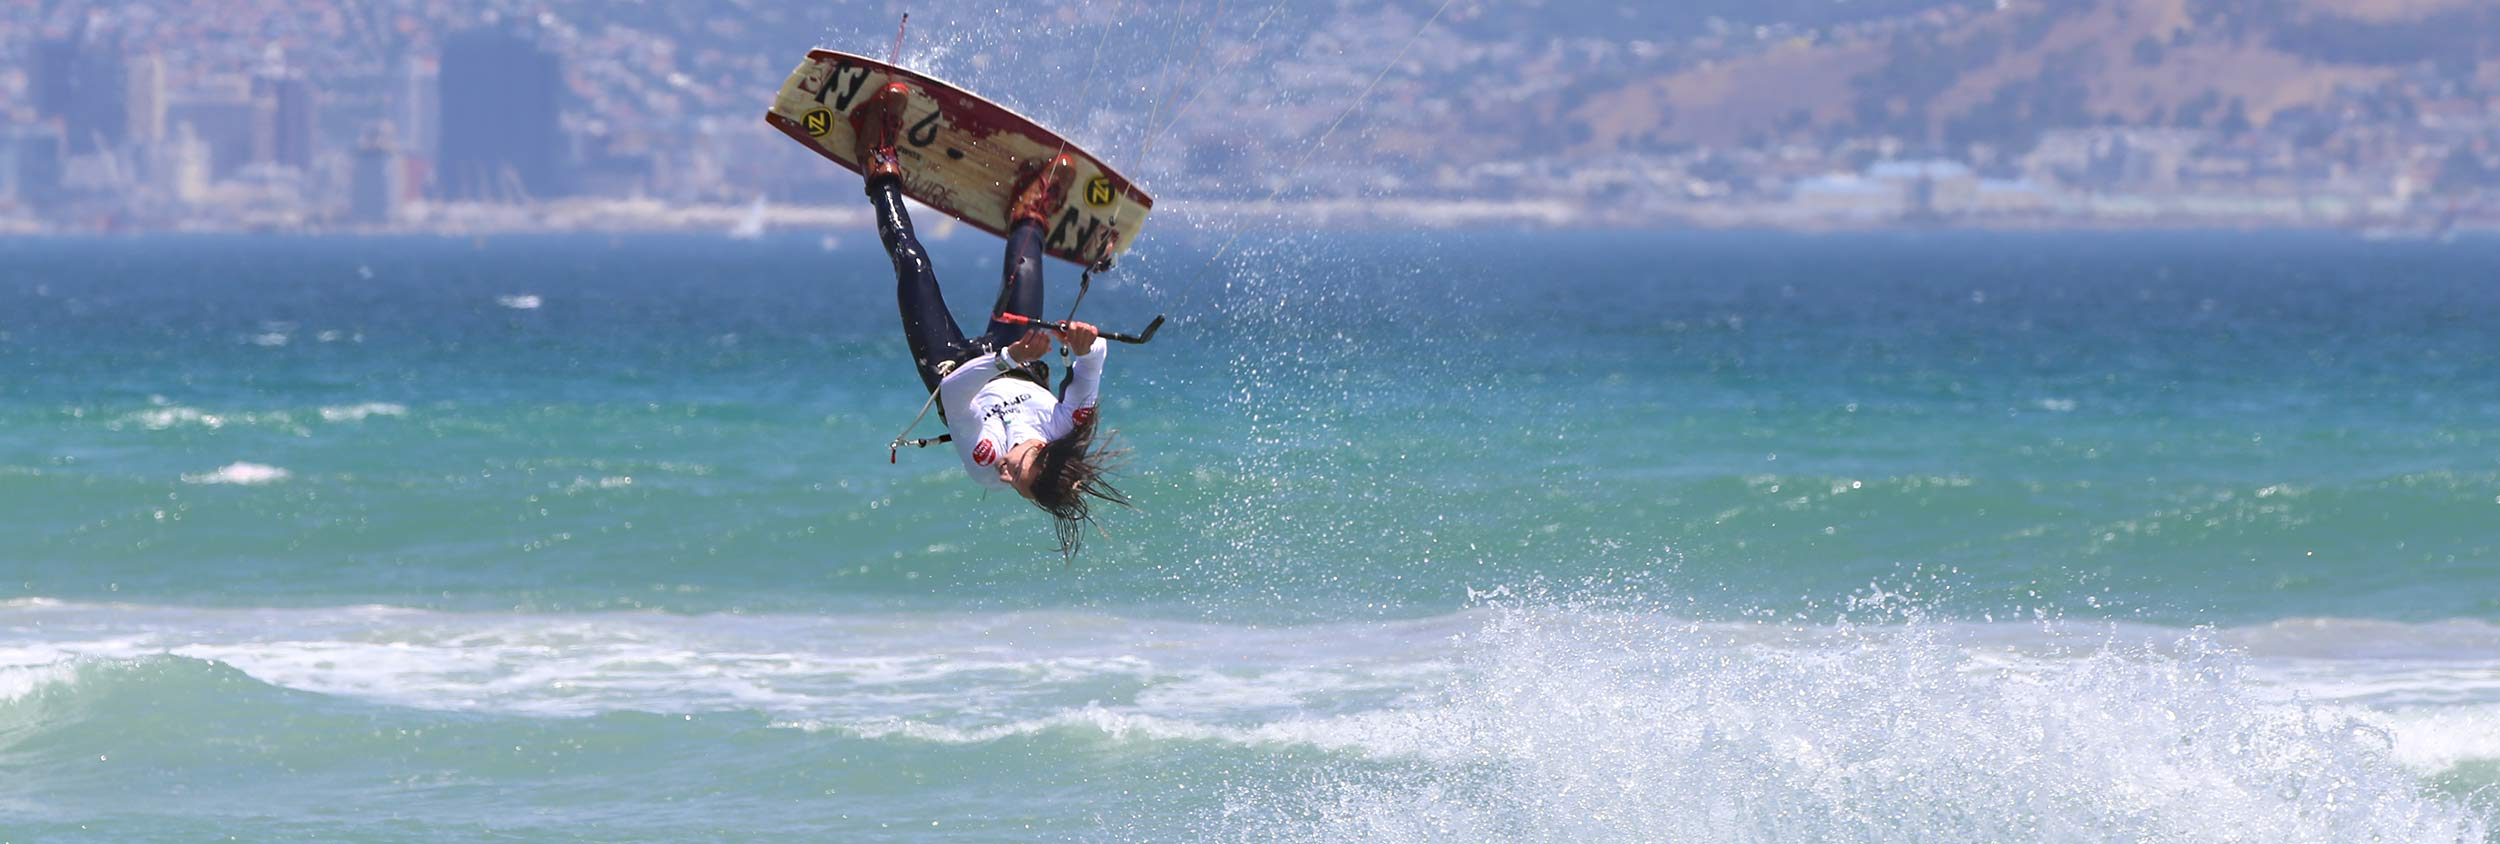 Oswald Smith South African freestyle kitesurfer competing in a SAKA event